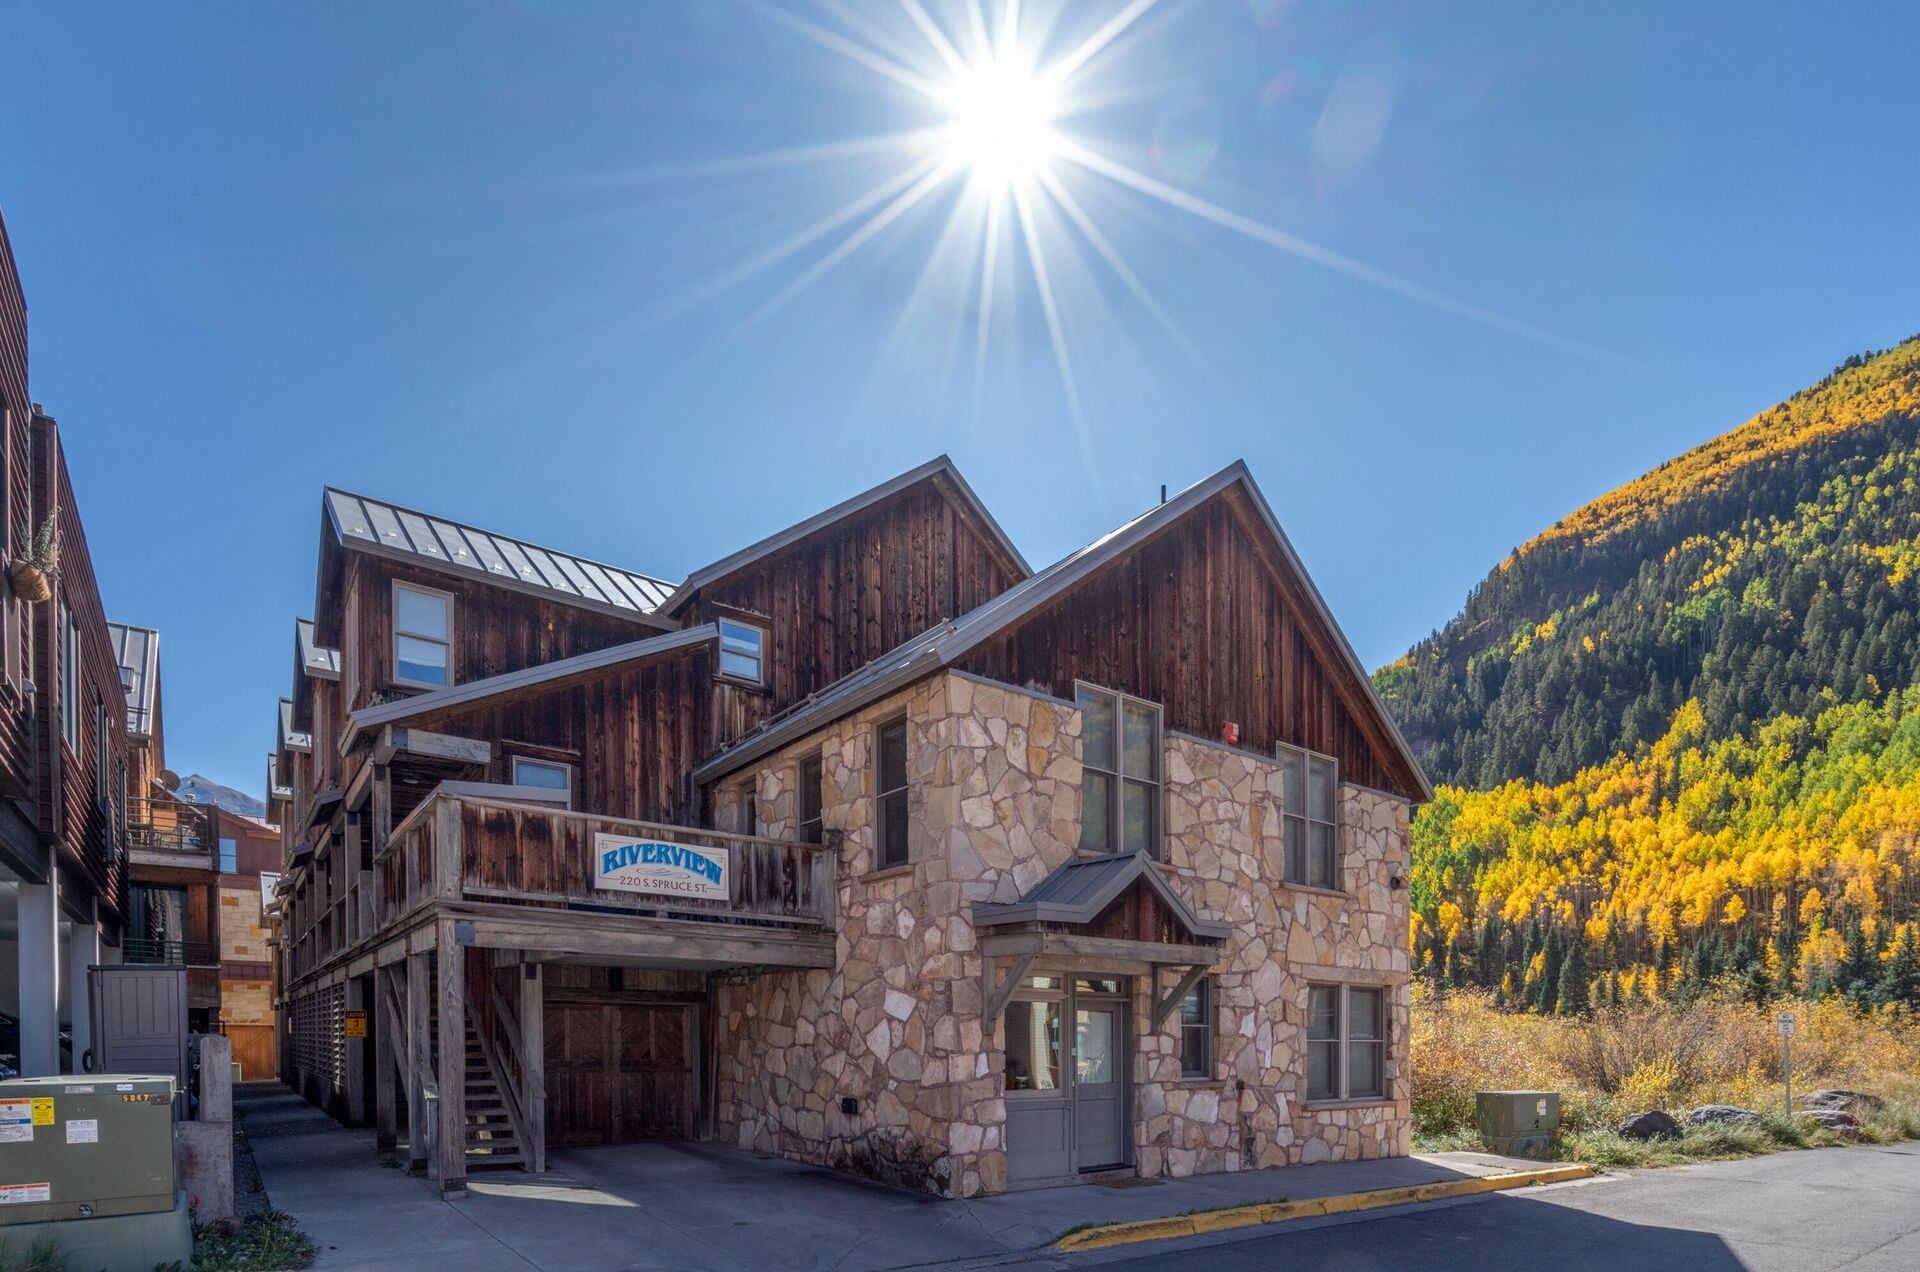 A view of the exterior of this 3 bedroom condo in Telluride, with the sun directly above it.